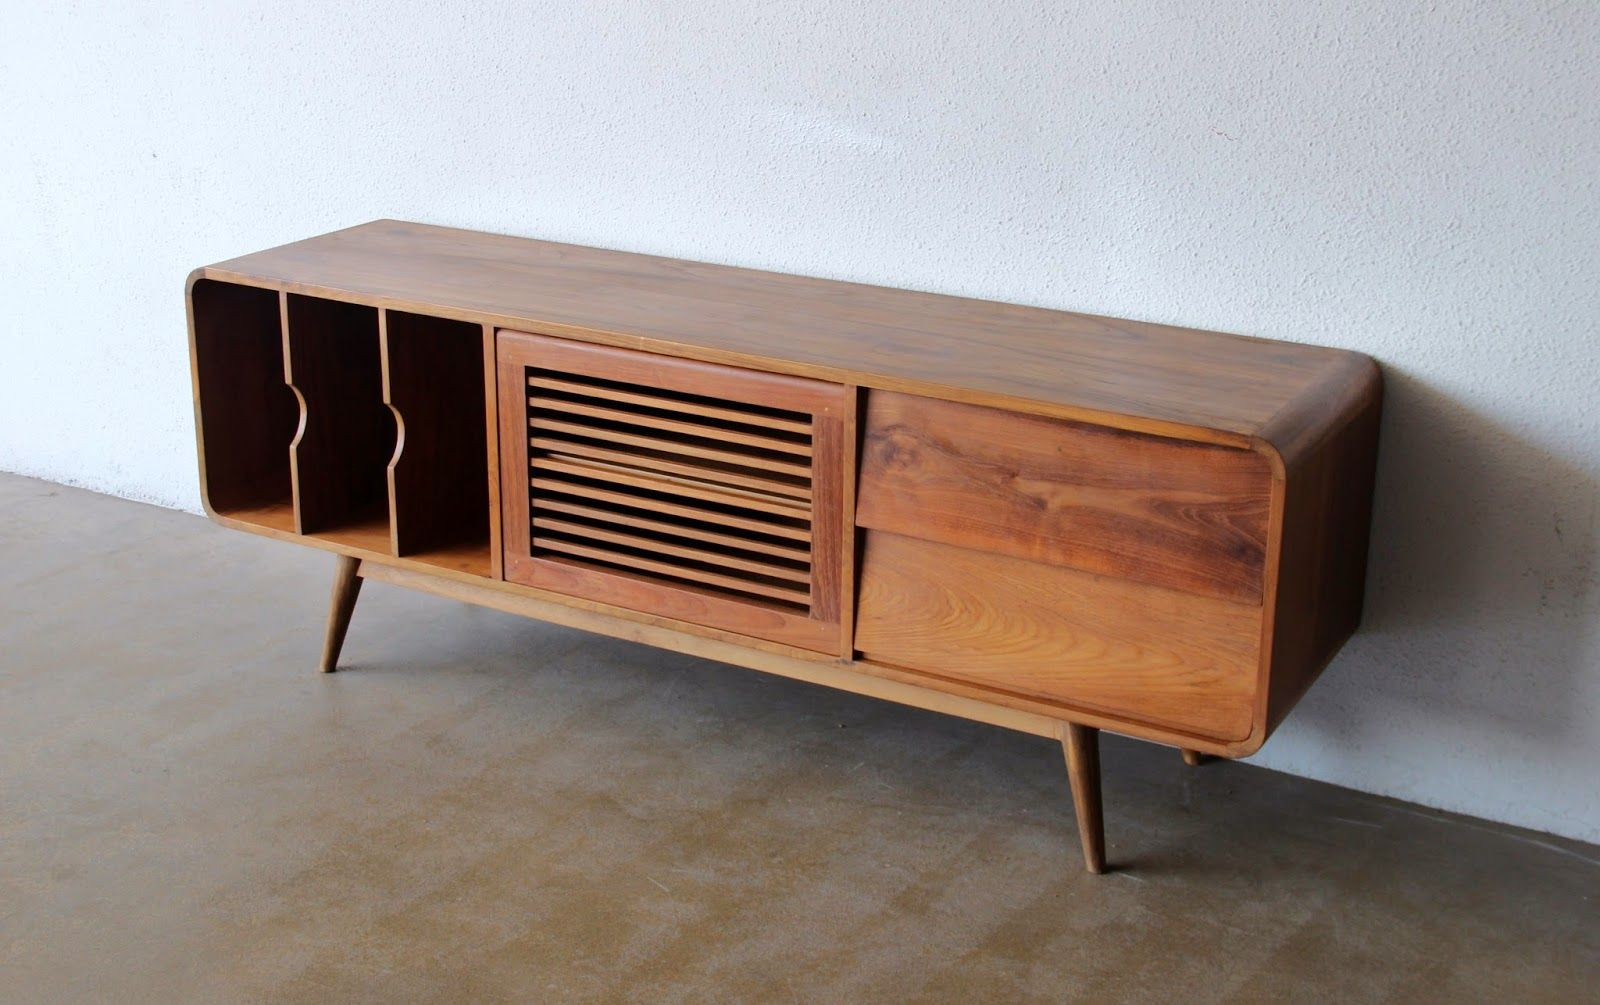 Second Charm Furniture Mid Century Modern Influence Bobs